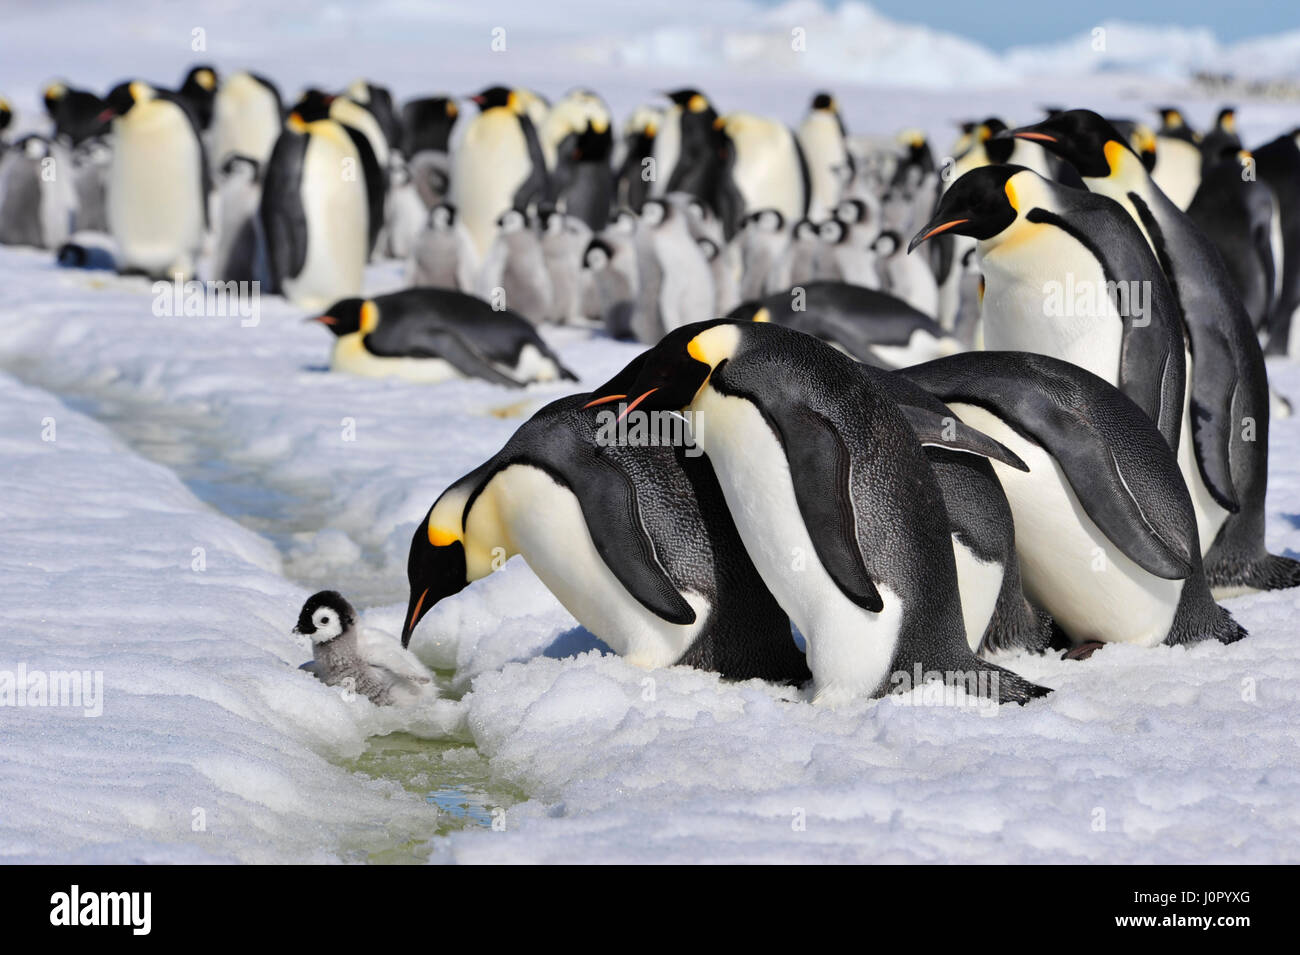 Emperor Penguins with chick - Stock Image